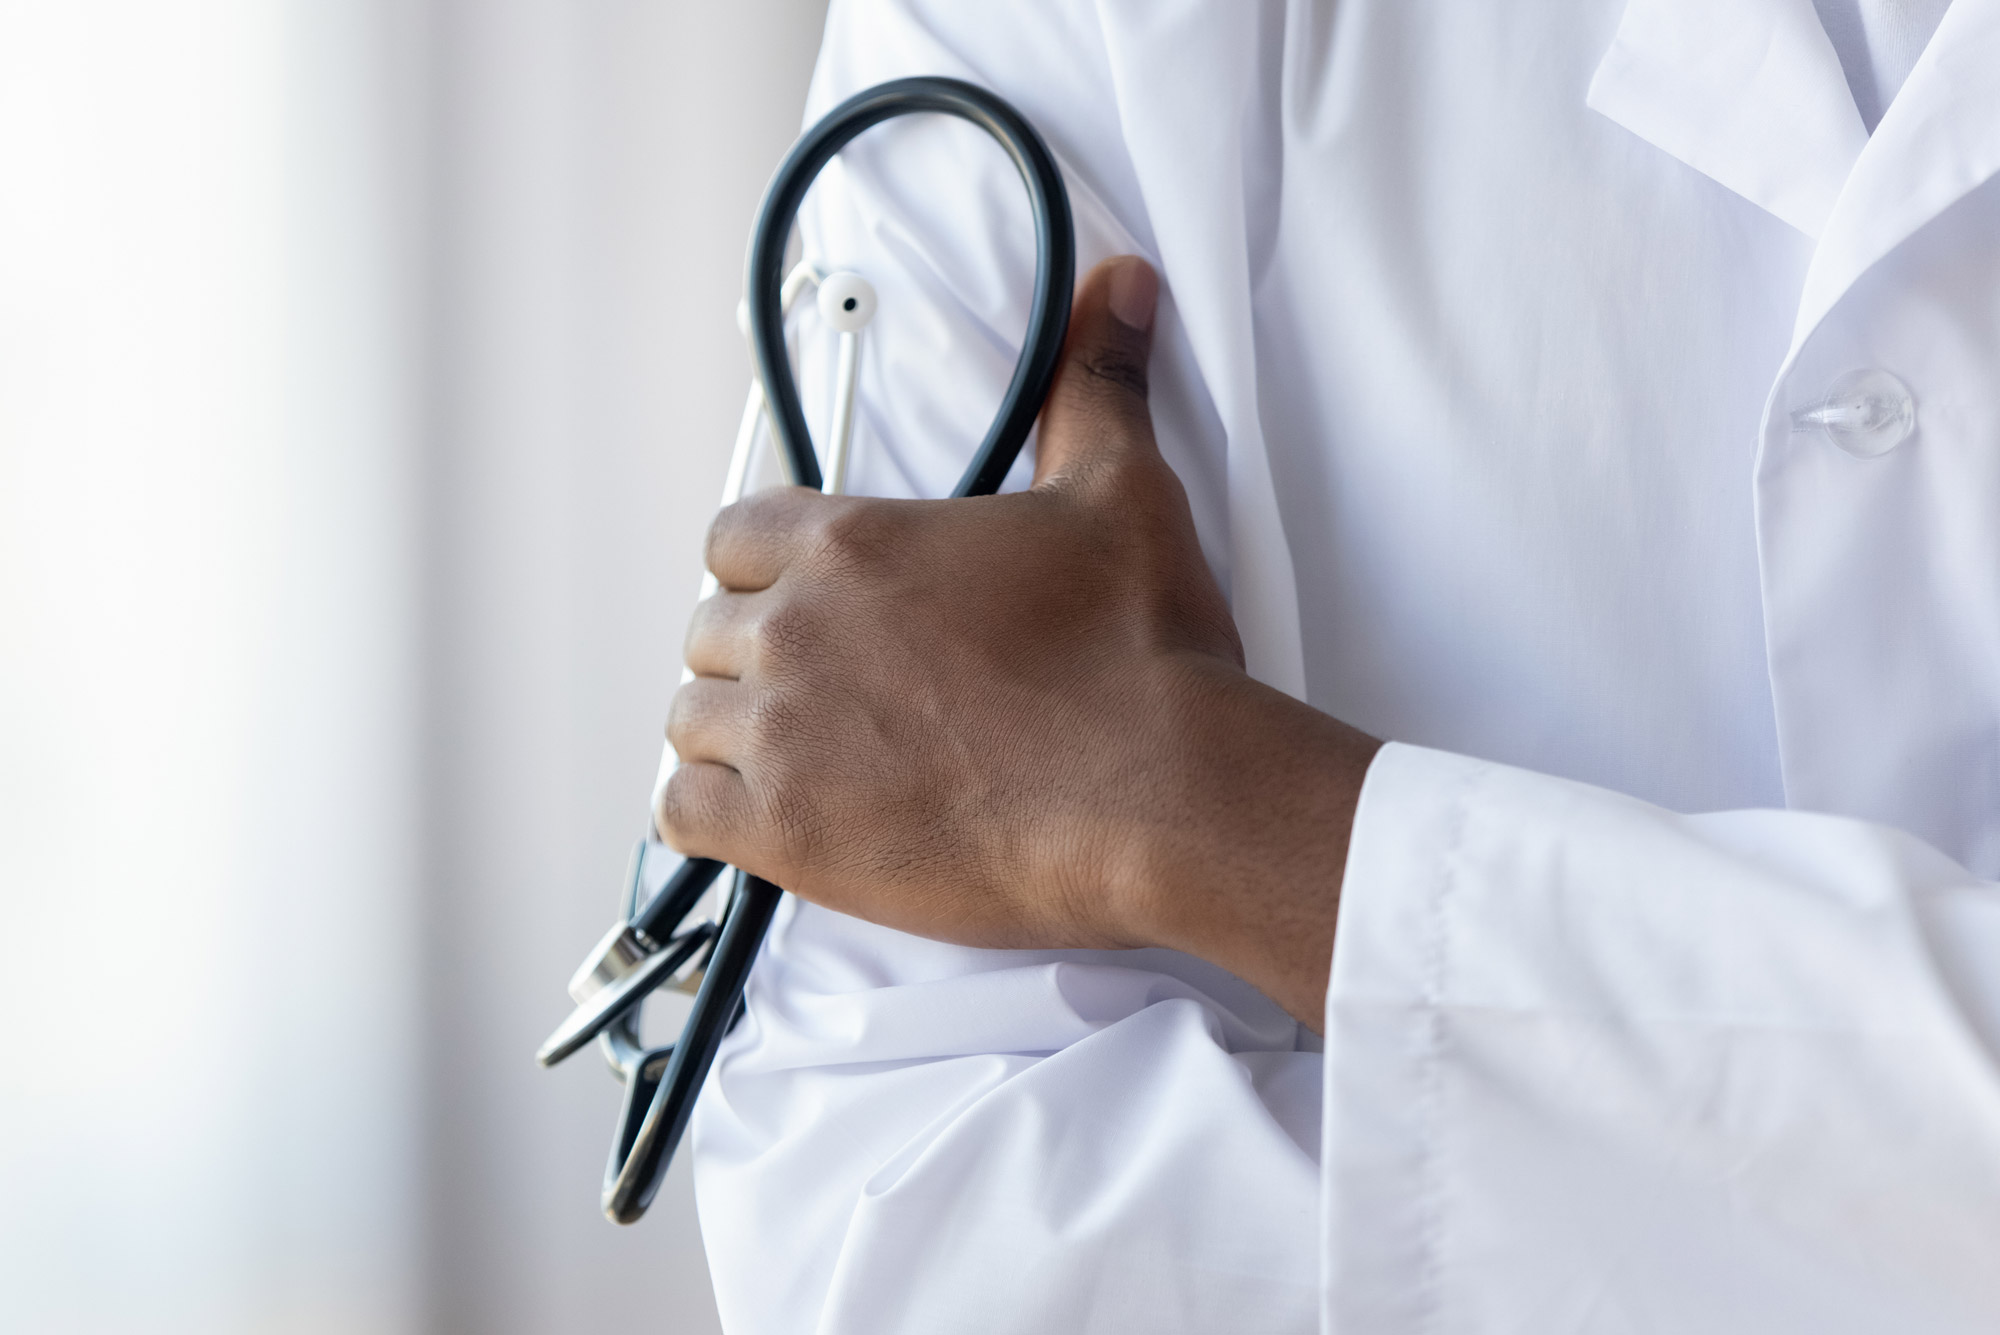 A photo of a doctor holding a stethoscope against their white lab coat.